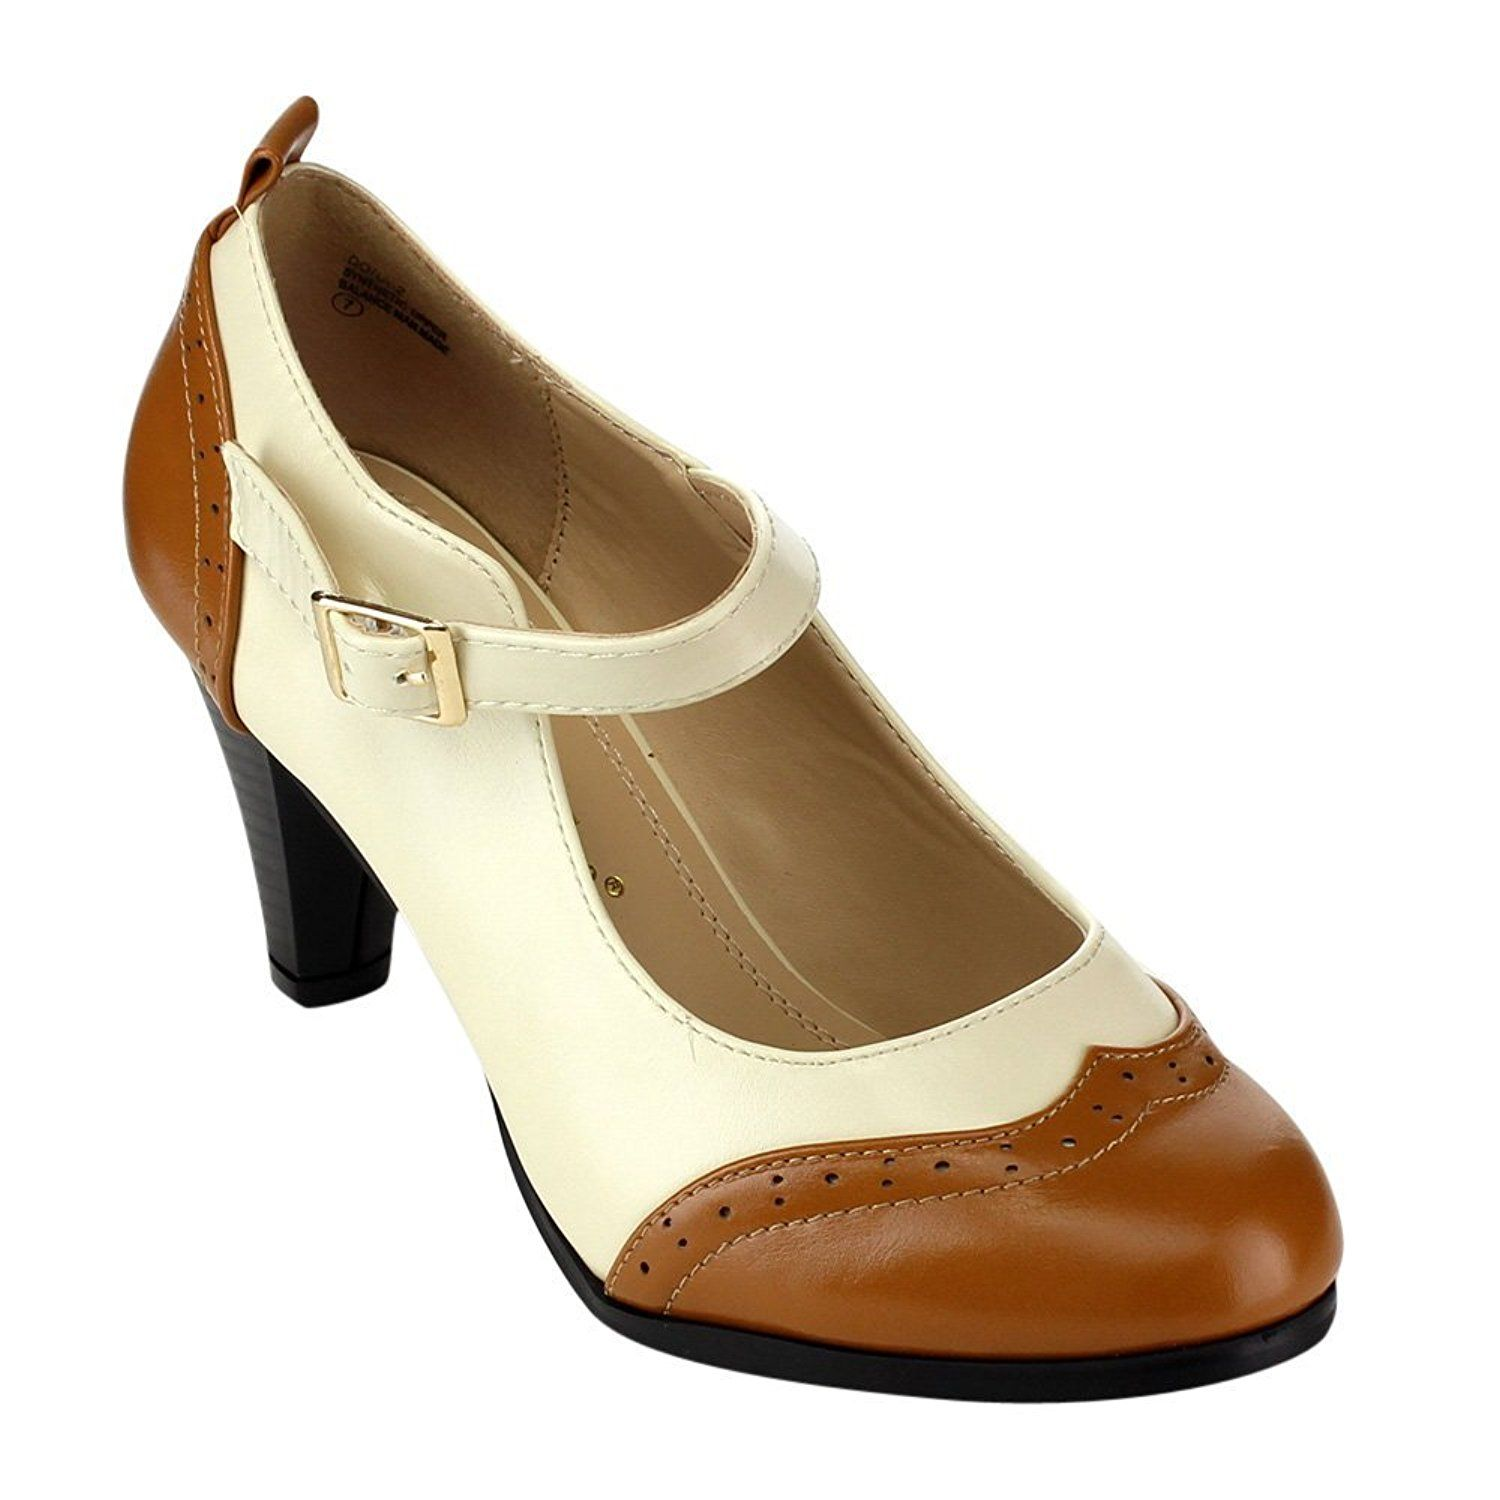 1920s Style Shoes- Flapper, Gatsby, Downton Abbey in 2019 ...